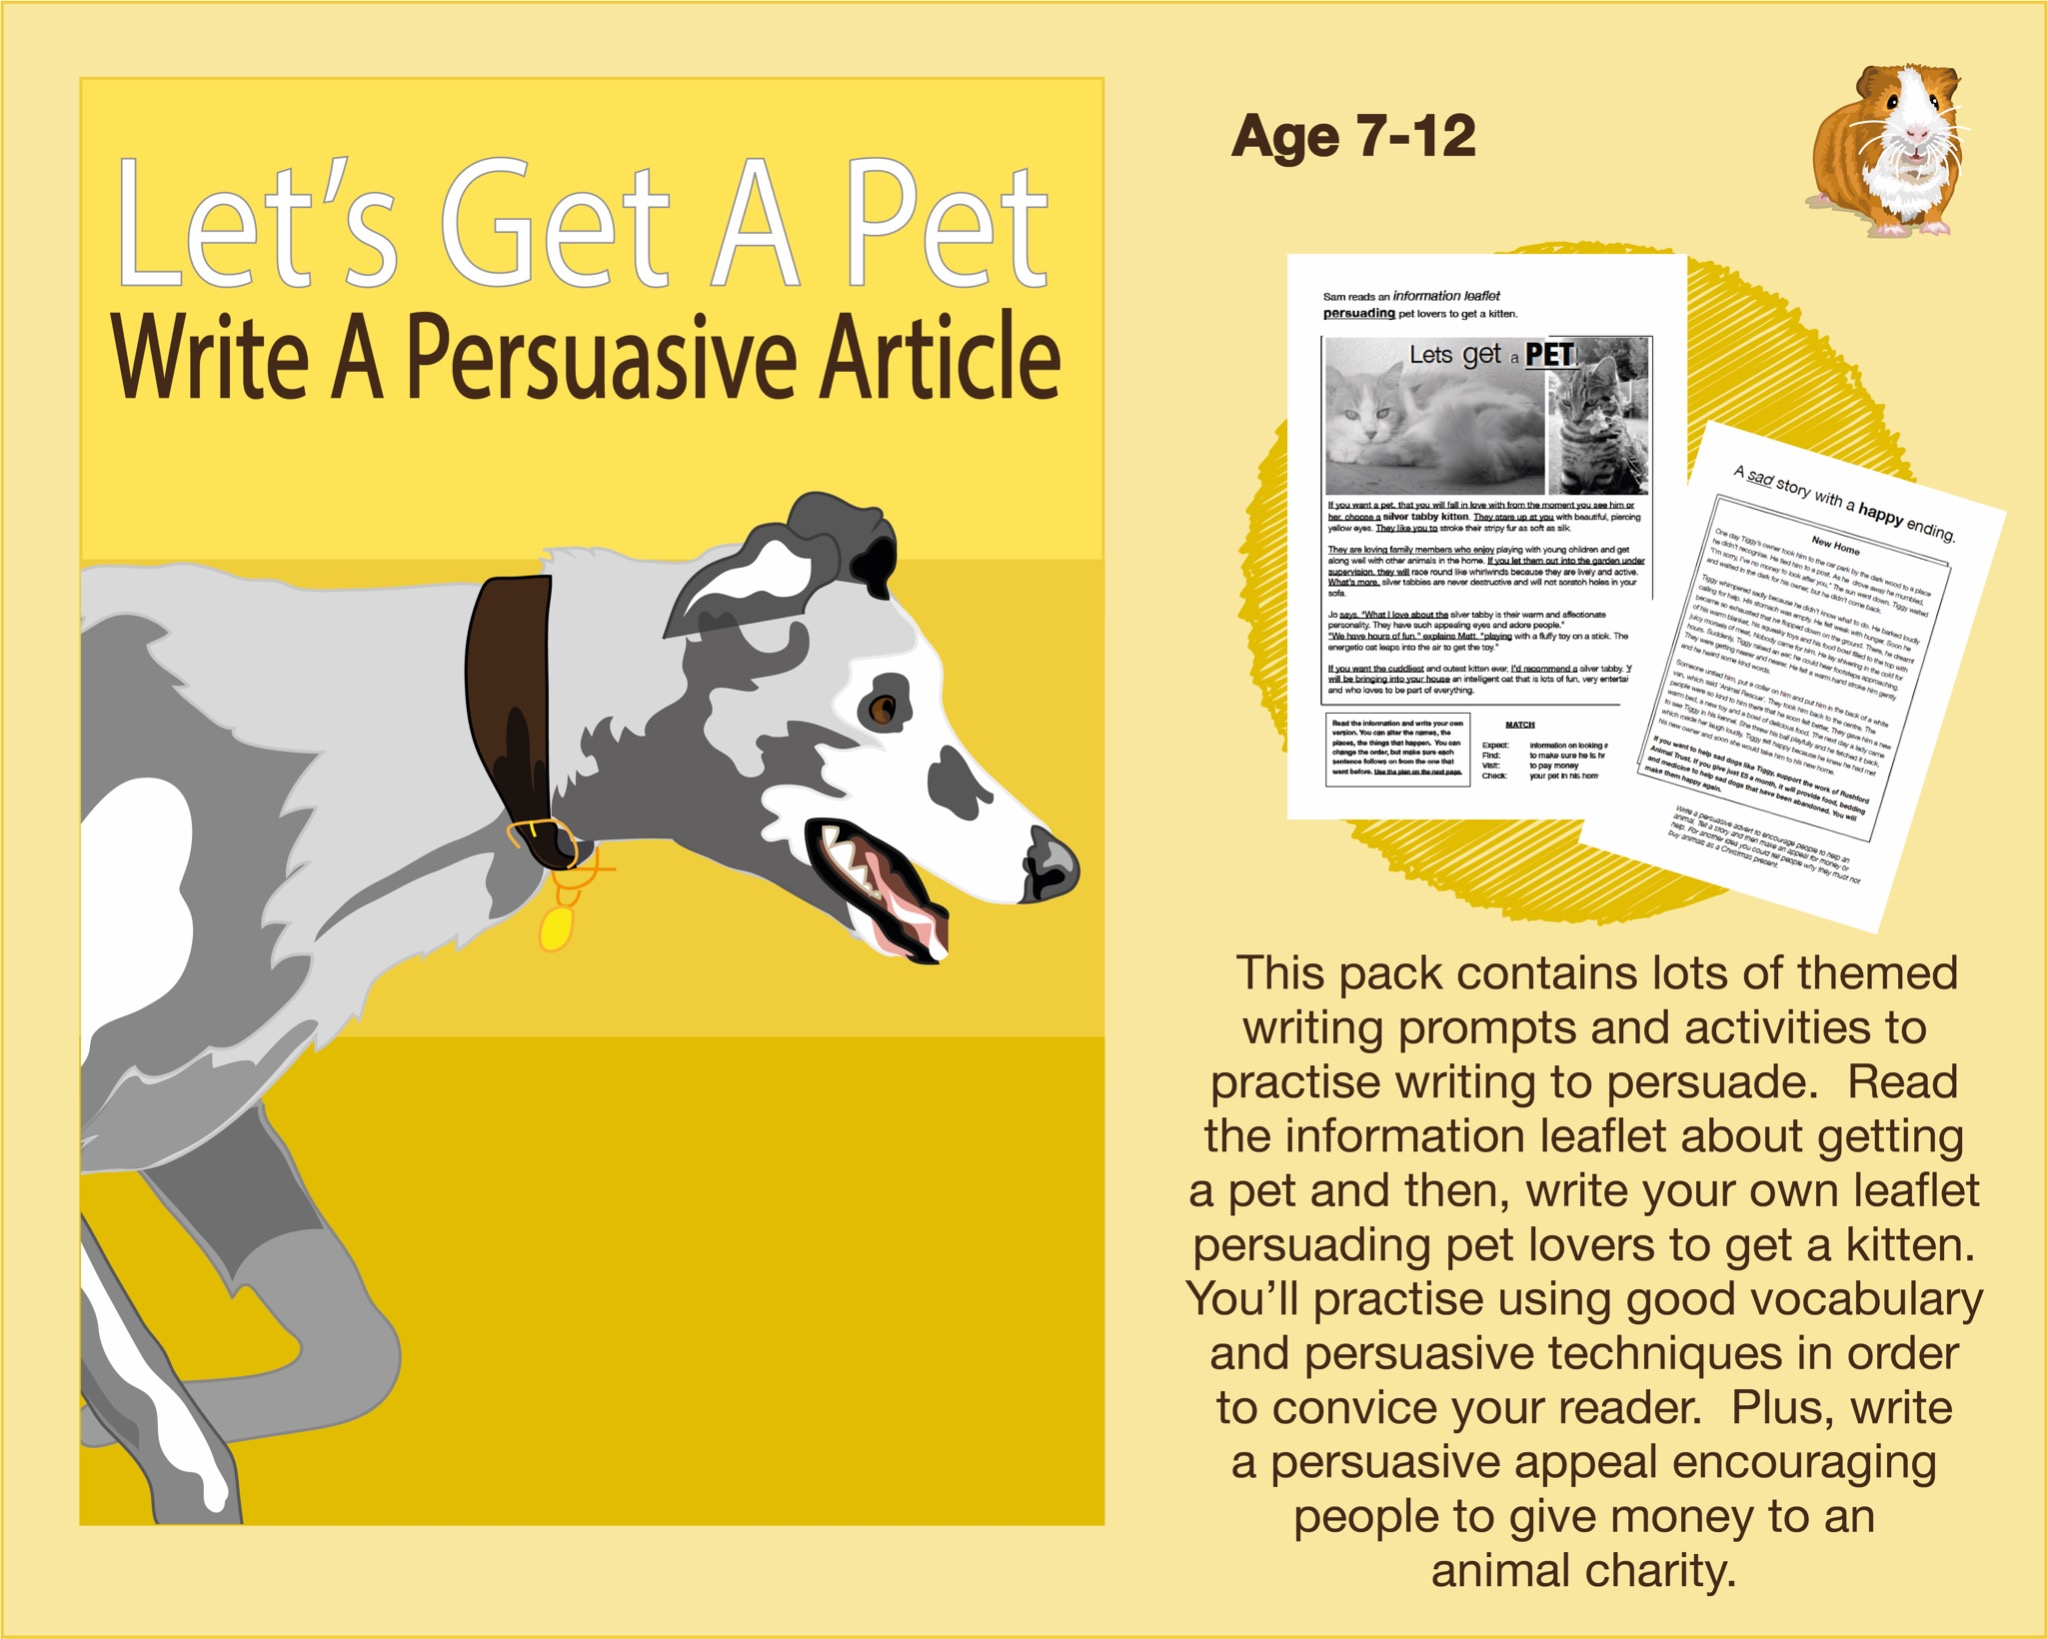 Write An Article Persuading People To Get A Pet (7-12 years)